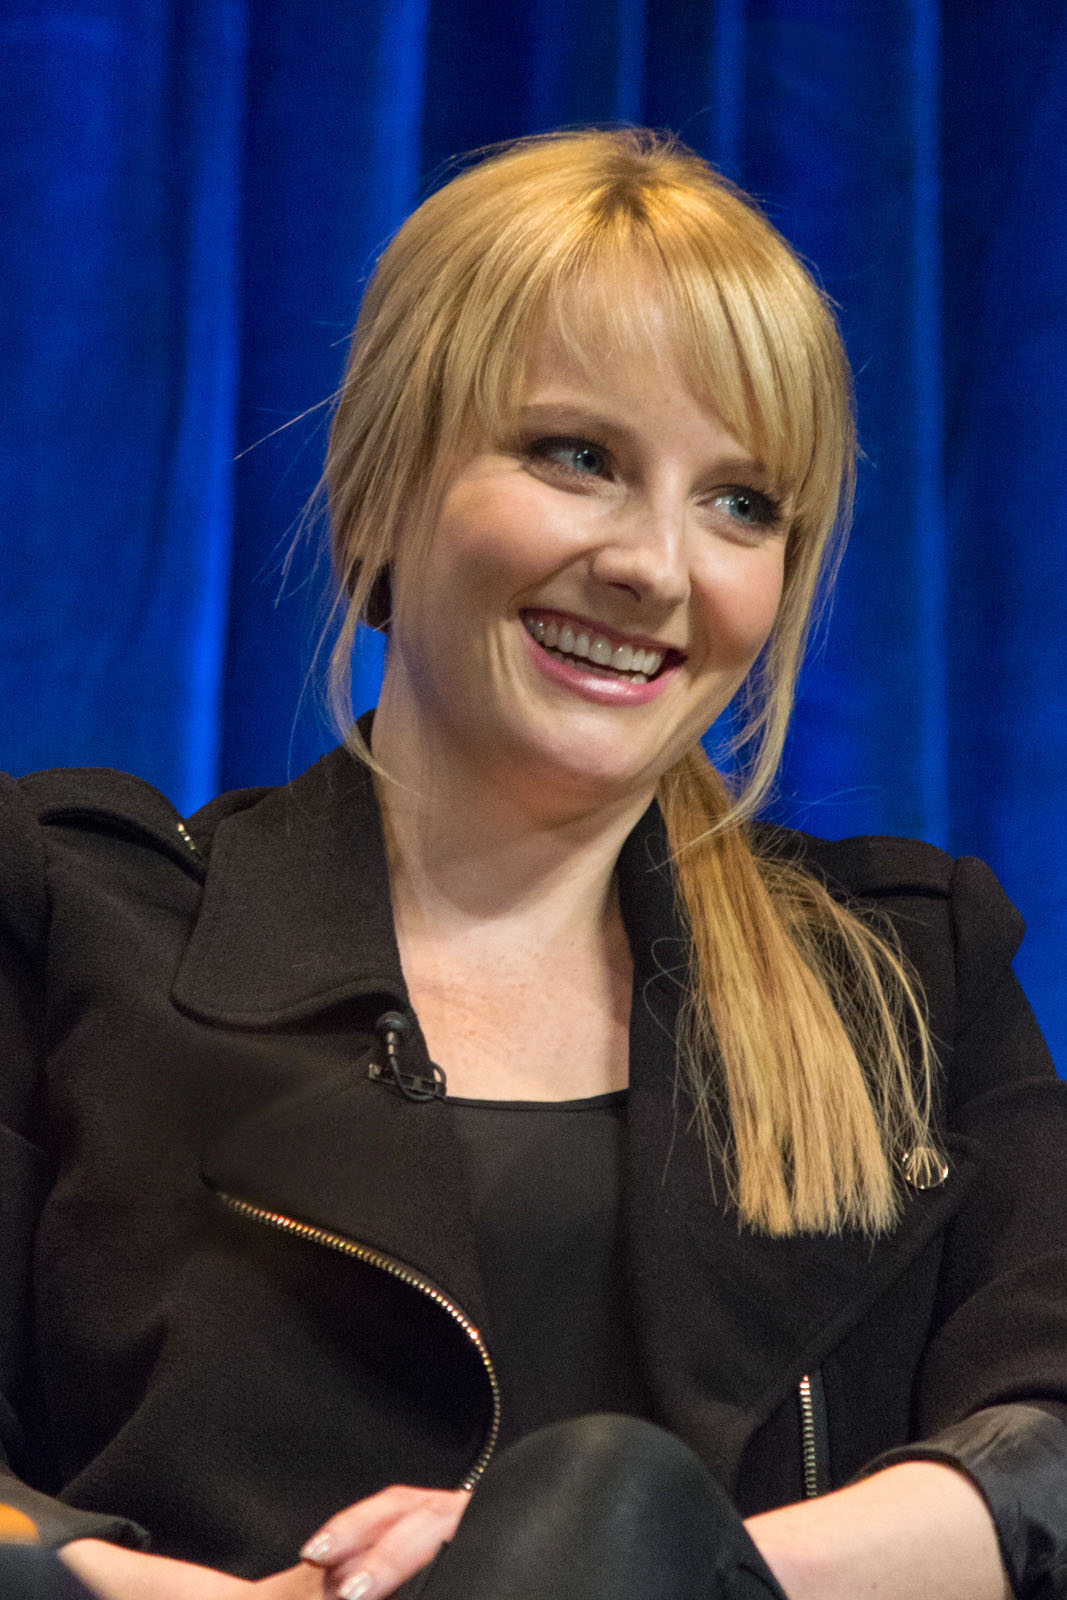 Melissa Rauch naked (16 pics) Video, iCloud, bra